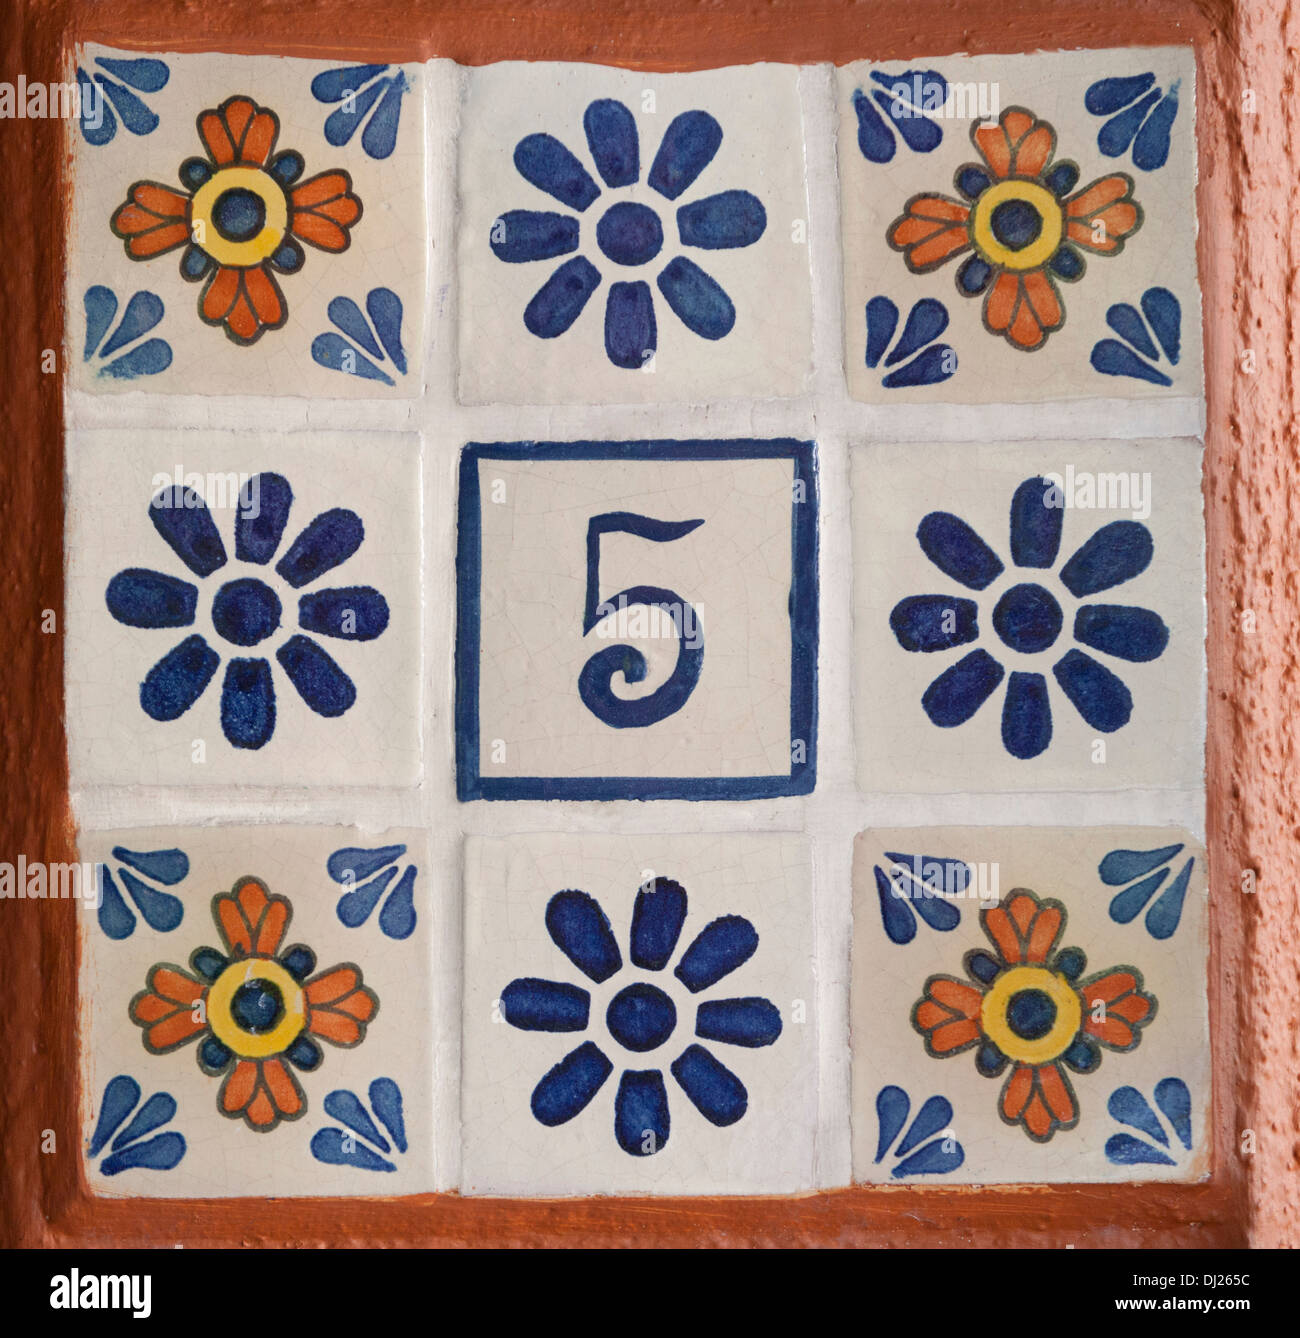 the number 5 set in hand painted tile amongst other floral tiles - Stock Image